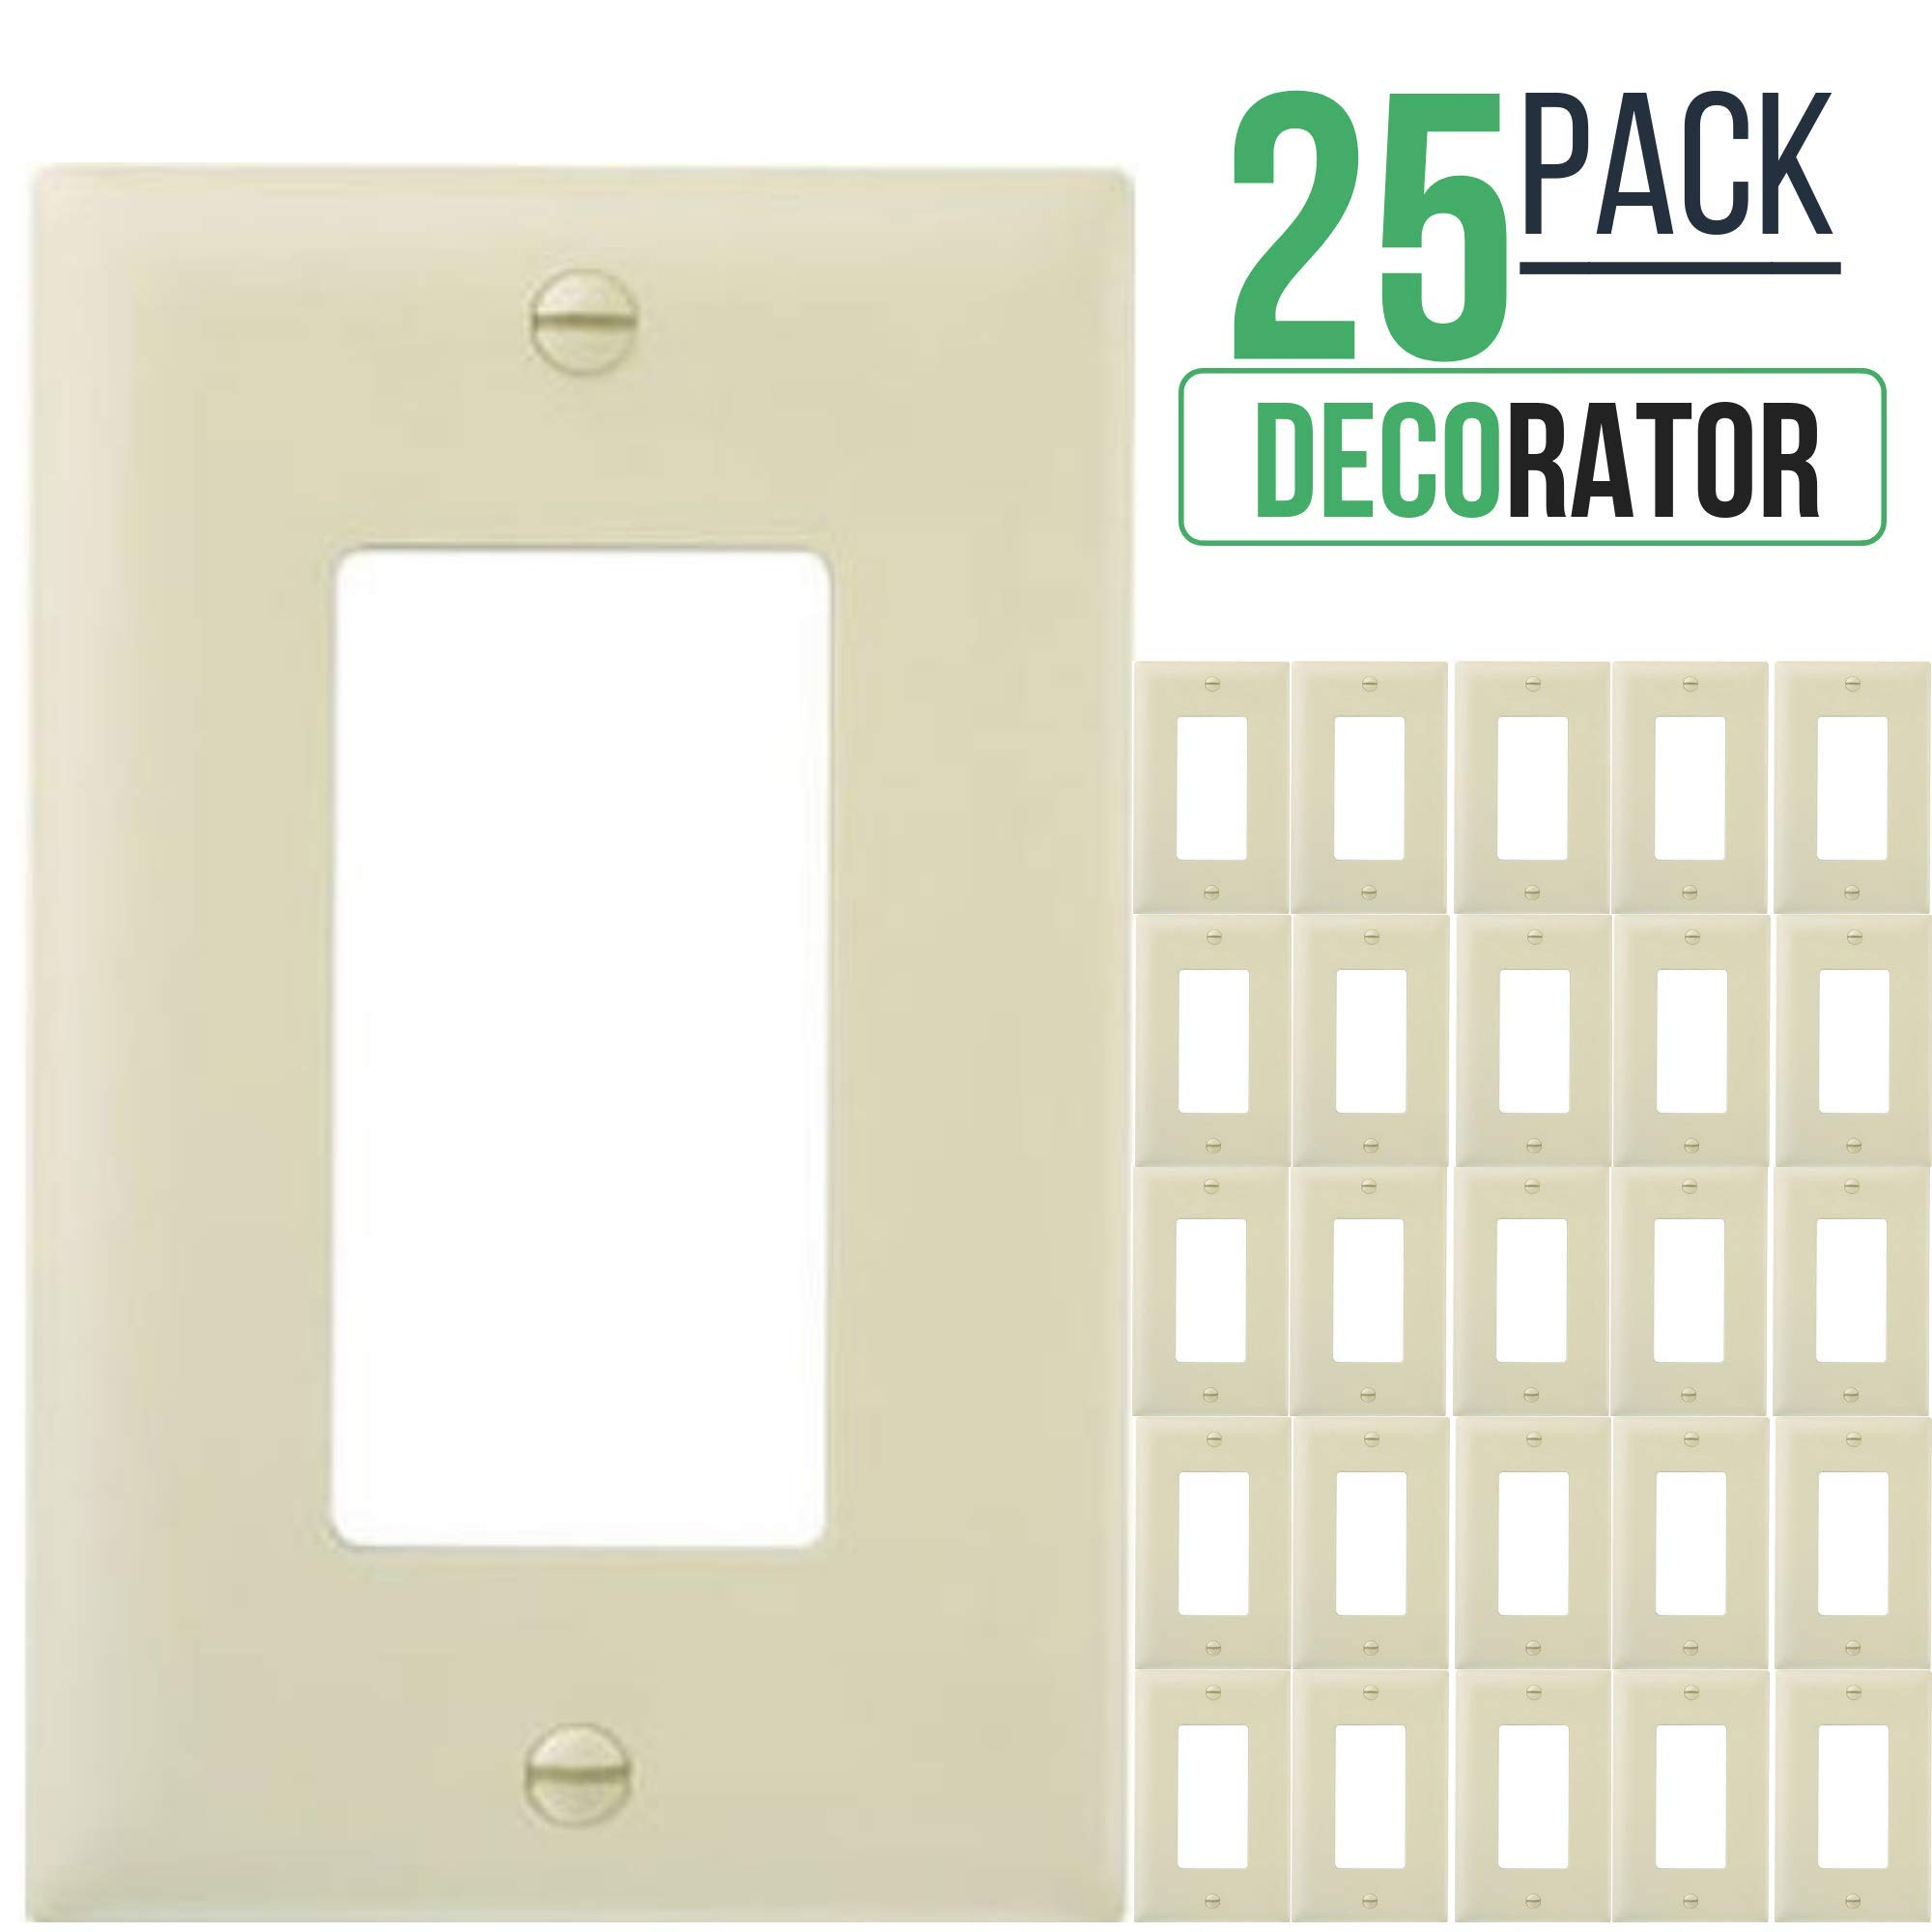 Decorator Switch Wall Plate, 1-Gang Standard Size, for Paddle Rockers, GFCI Devices, Timers, Dimmers, Sensors, Unbreakable Polycarbonate (25 Pack, Ivory)